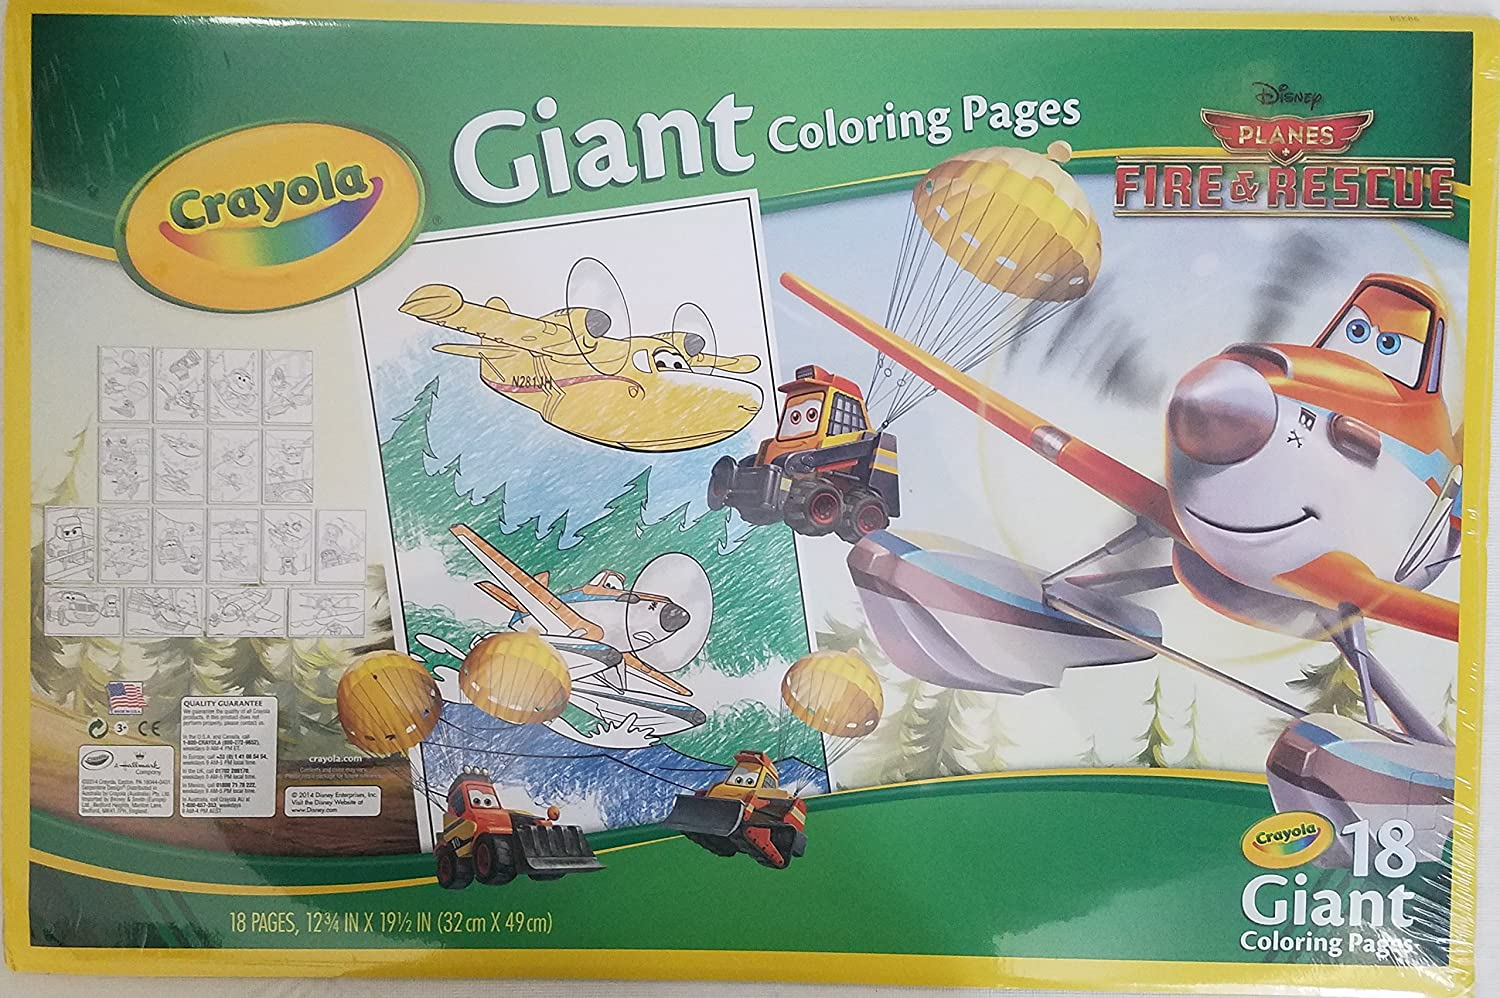 Amazon.com: Crayola Disney Planes Giant Coloring Pages: Toys & Games